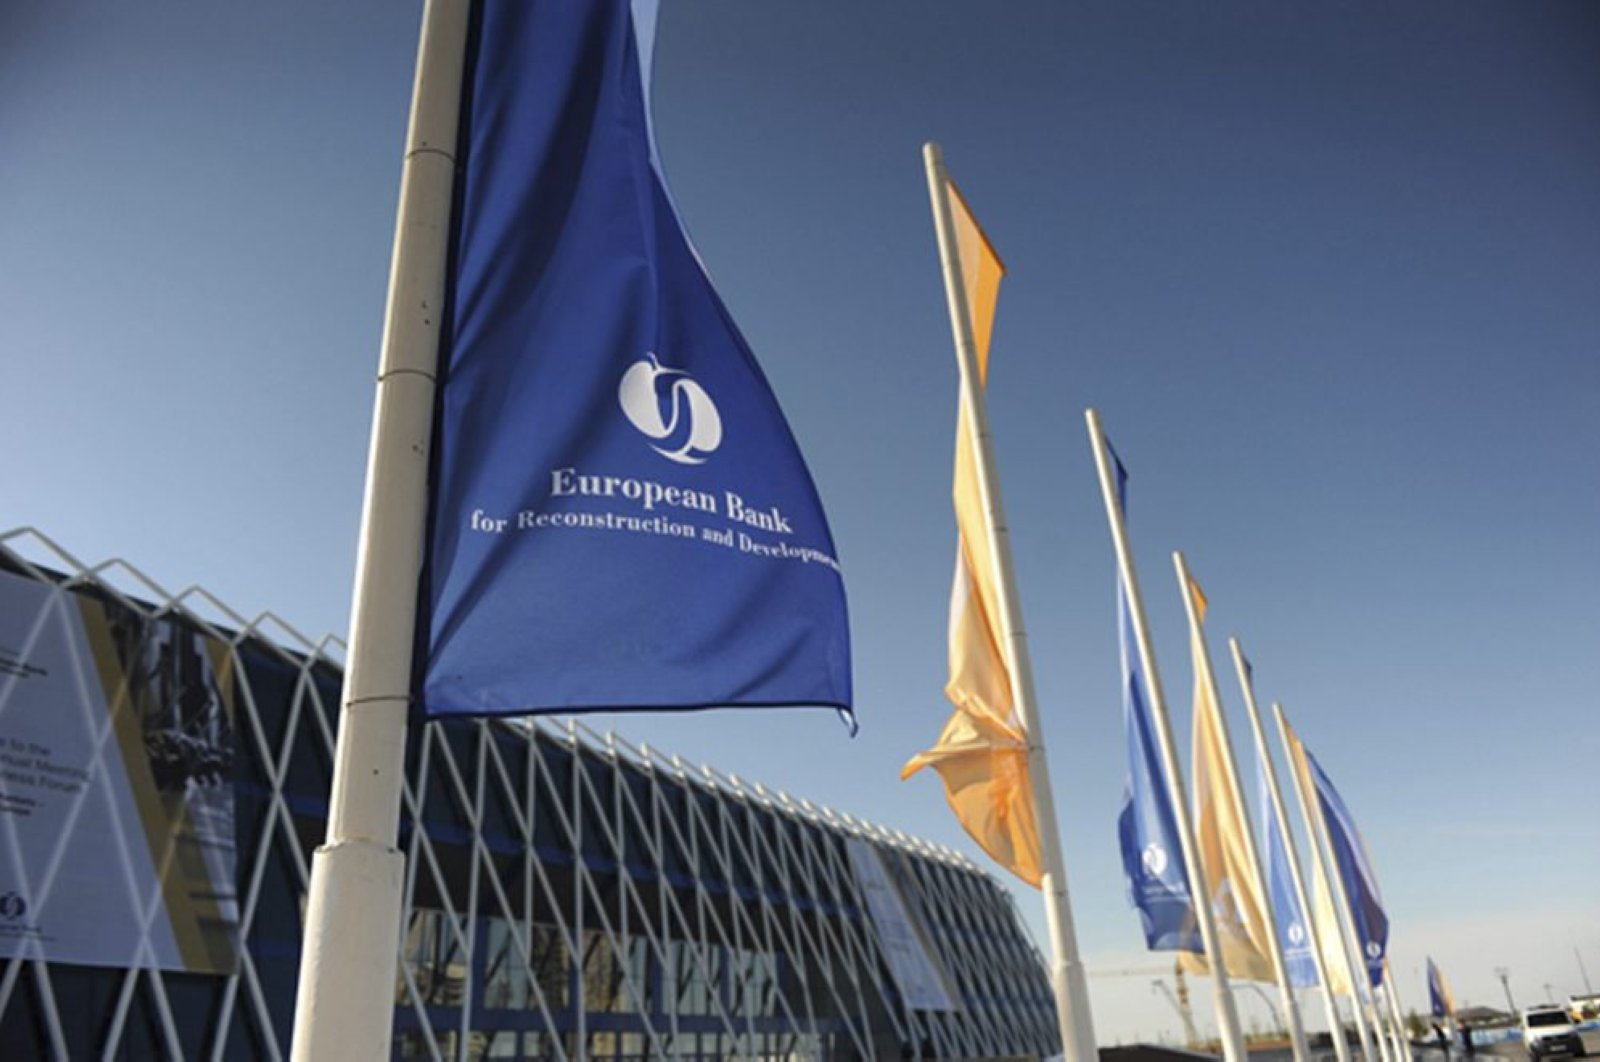 This file photo shows the European Bank for Reconstruction and Development's (EBRD) building in Astana, Kazakhstan, May 21, 2011. (SABAH File Photo)